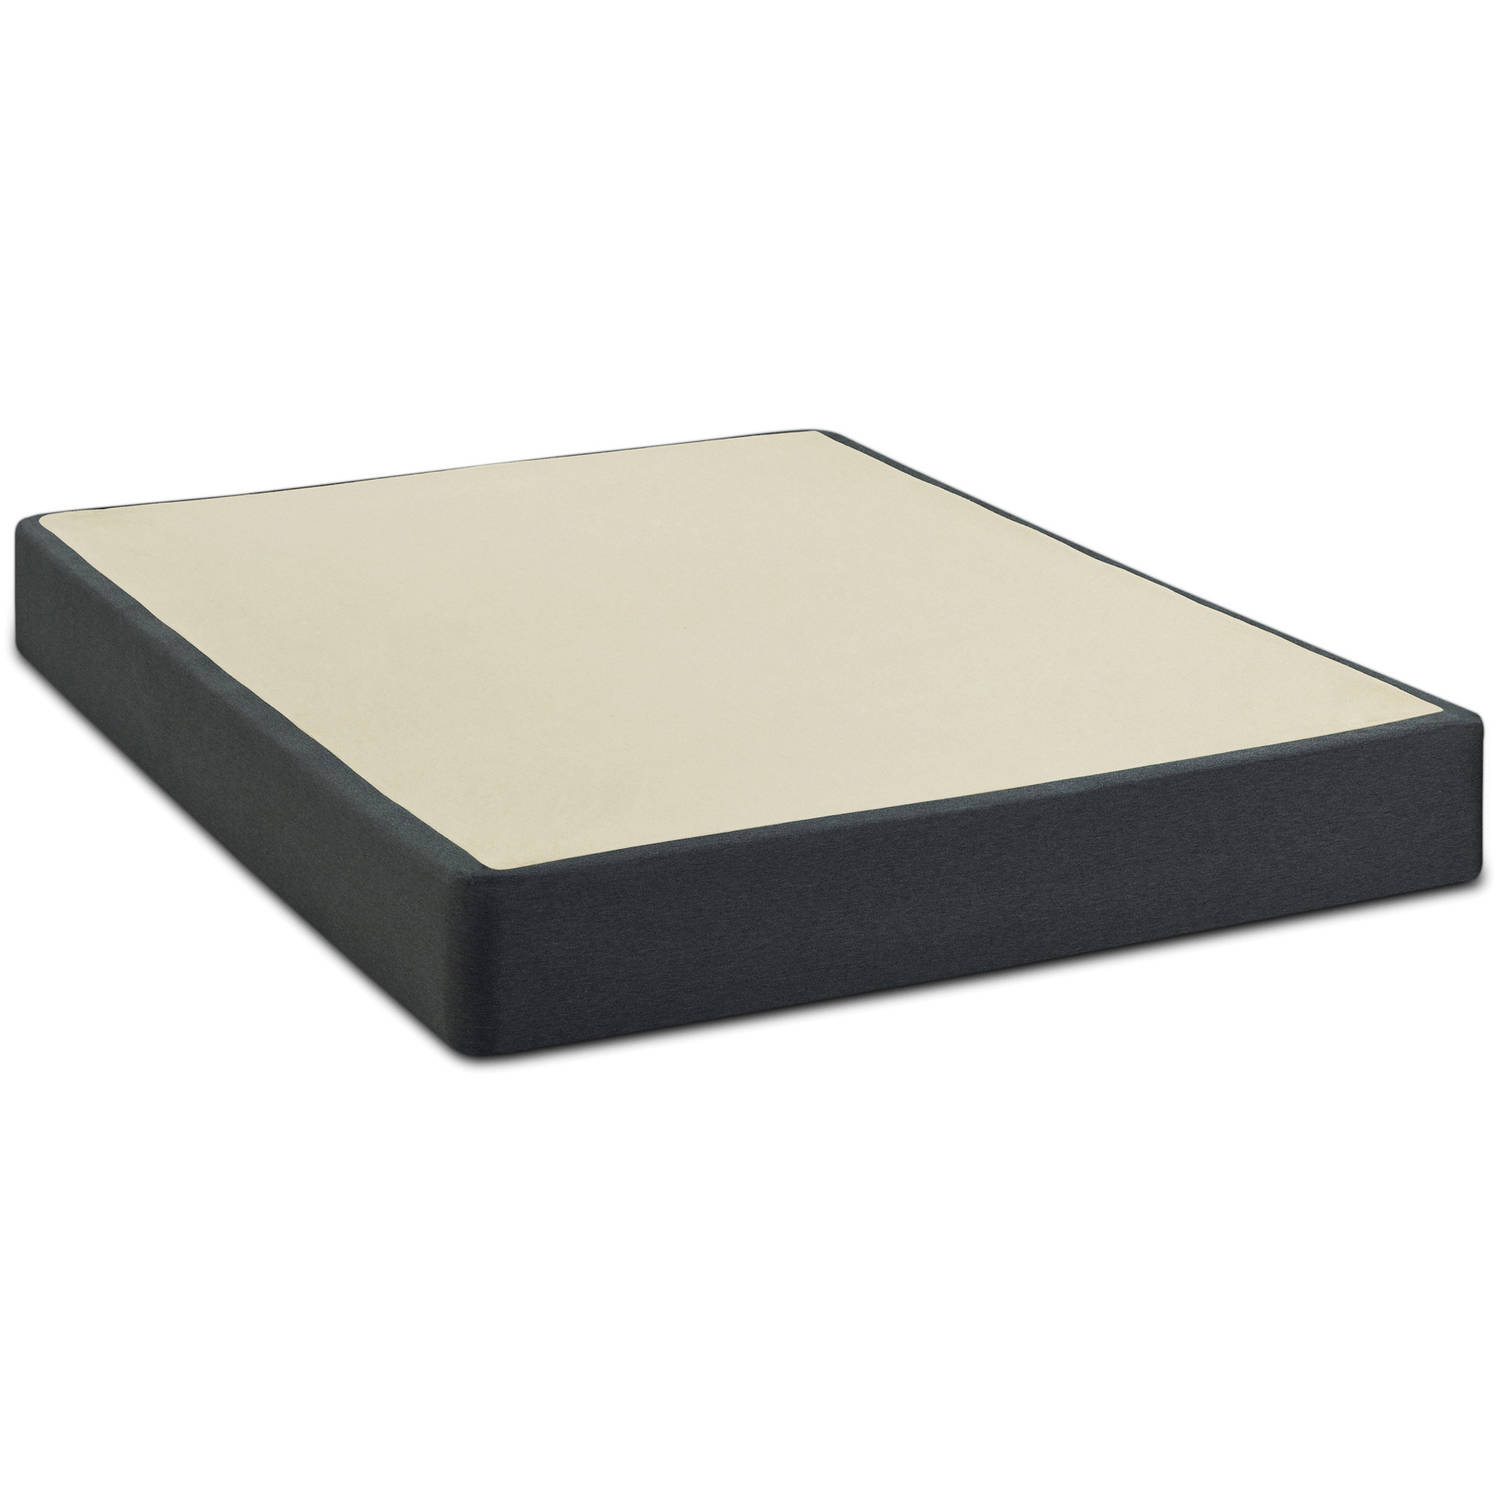 "Sealy Posturepedic 9"" Foundation, Multiple Sizes"